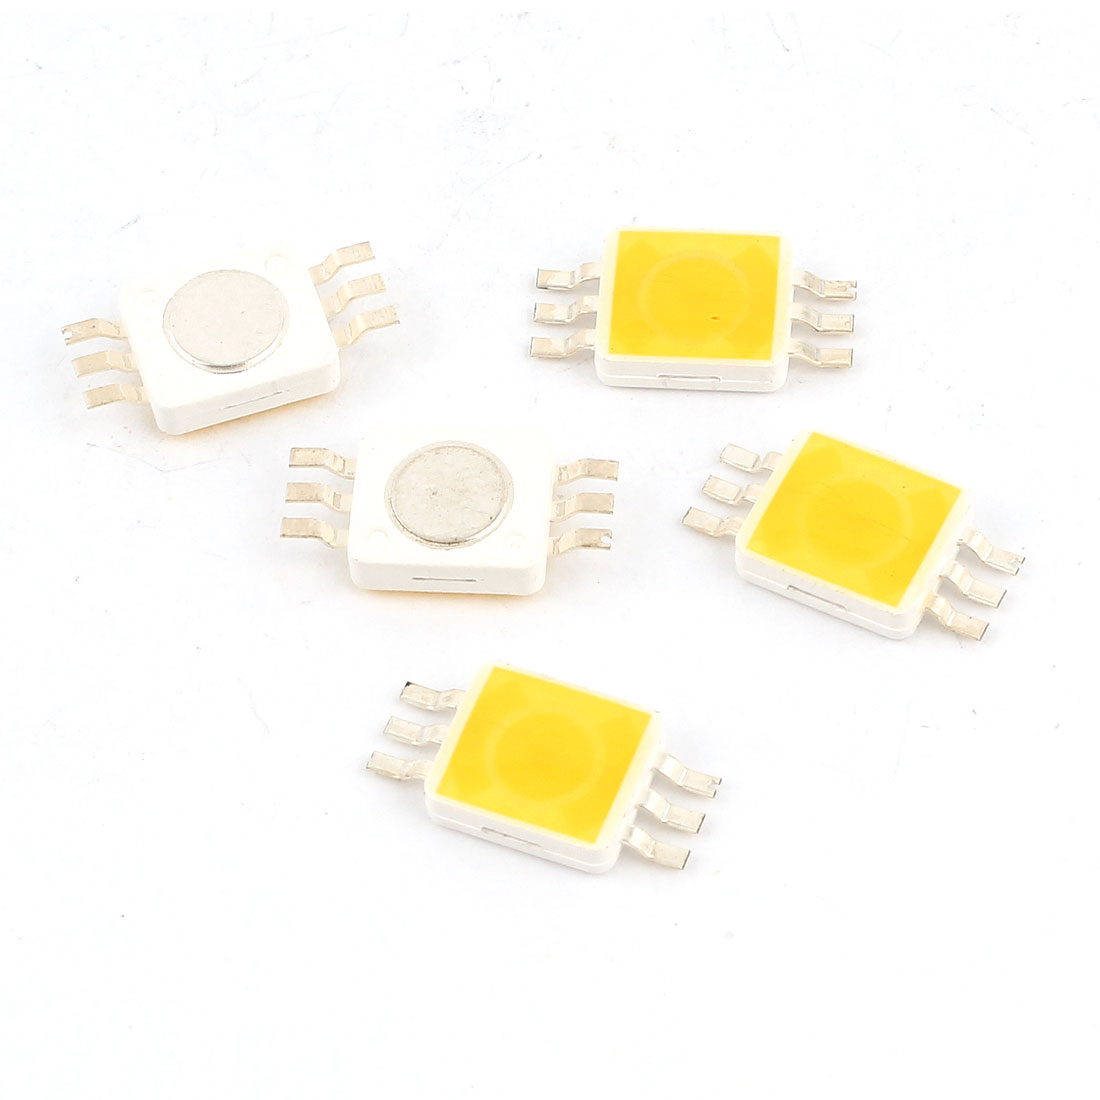 5pcs Warm White Light SMD 9280 LED Bead Chip Bulb 3.0-3.6V 350mA 1W 90LM